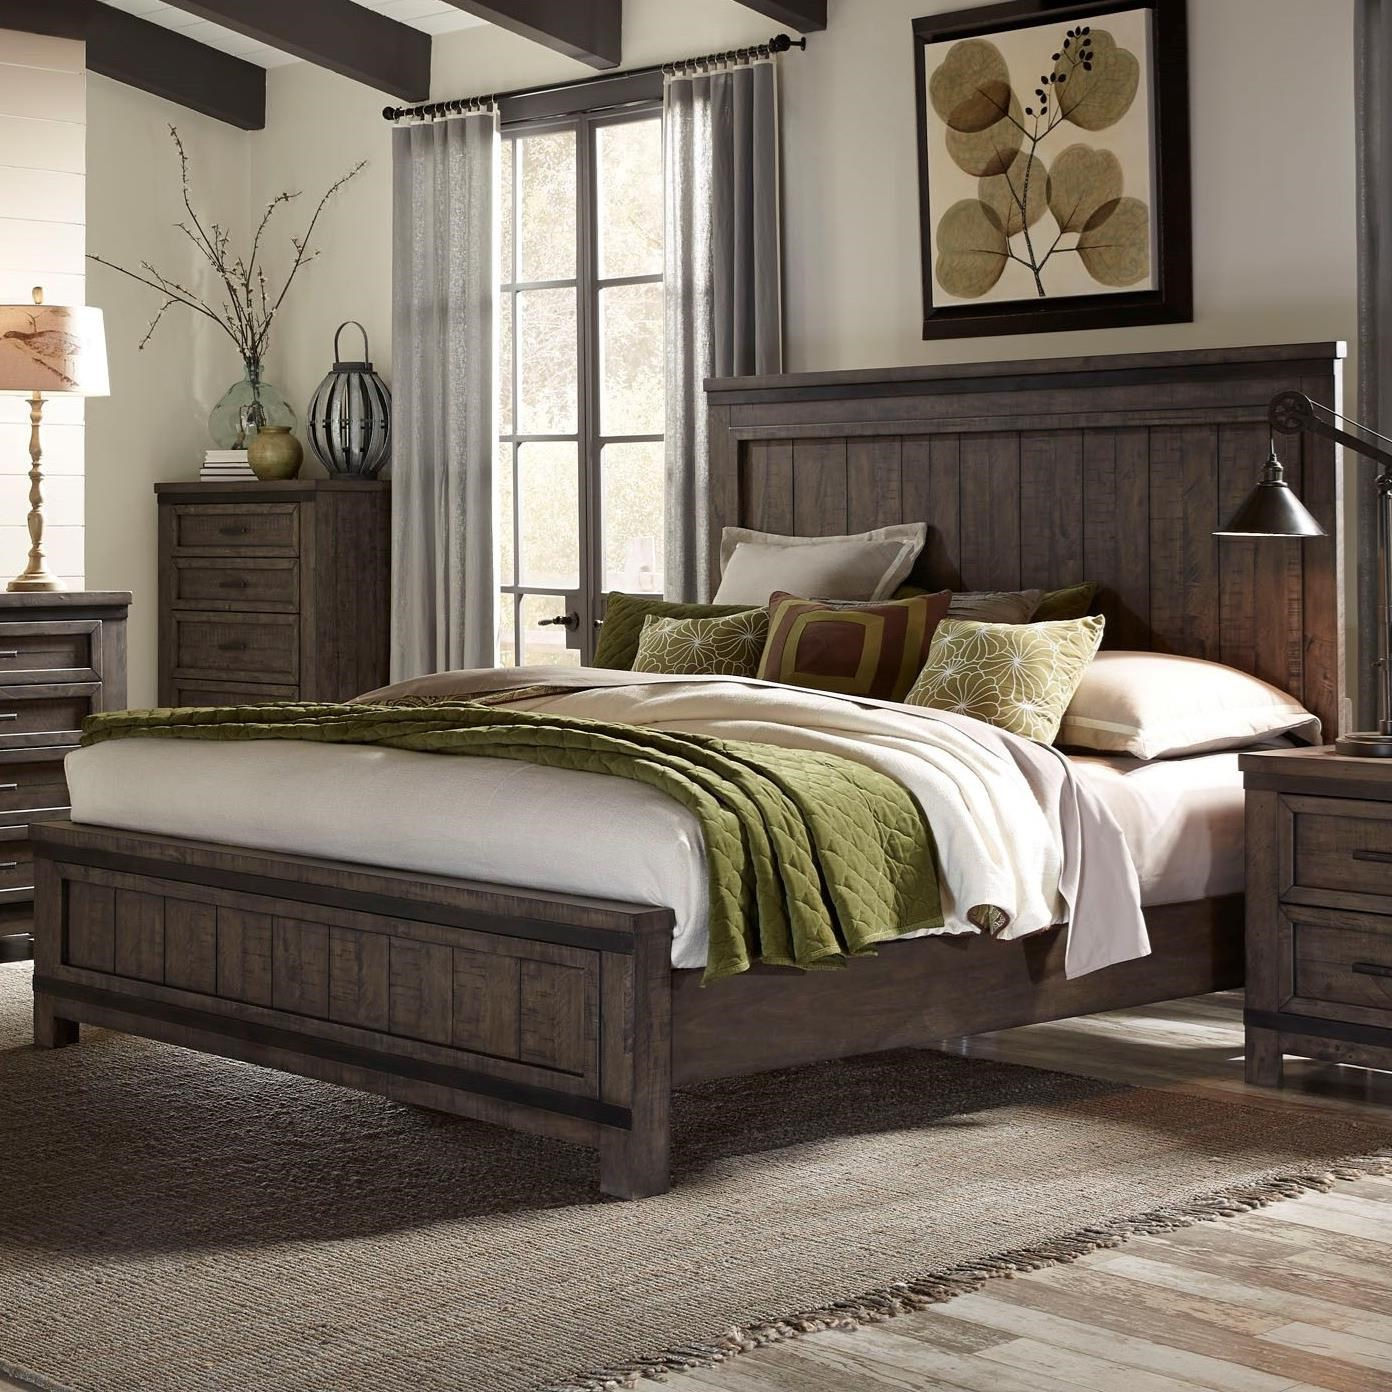 Thornwood Hills King Panel Bed by Liberty Furniture at Northeast Factory Direct